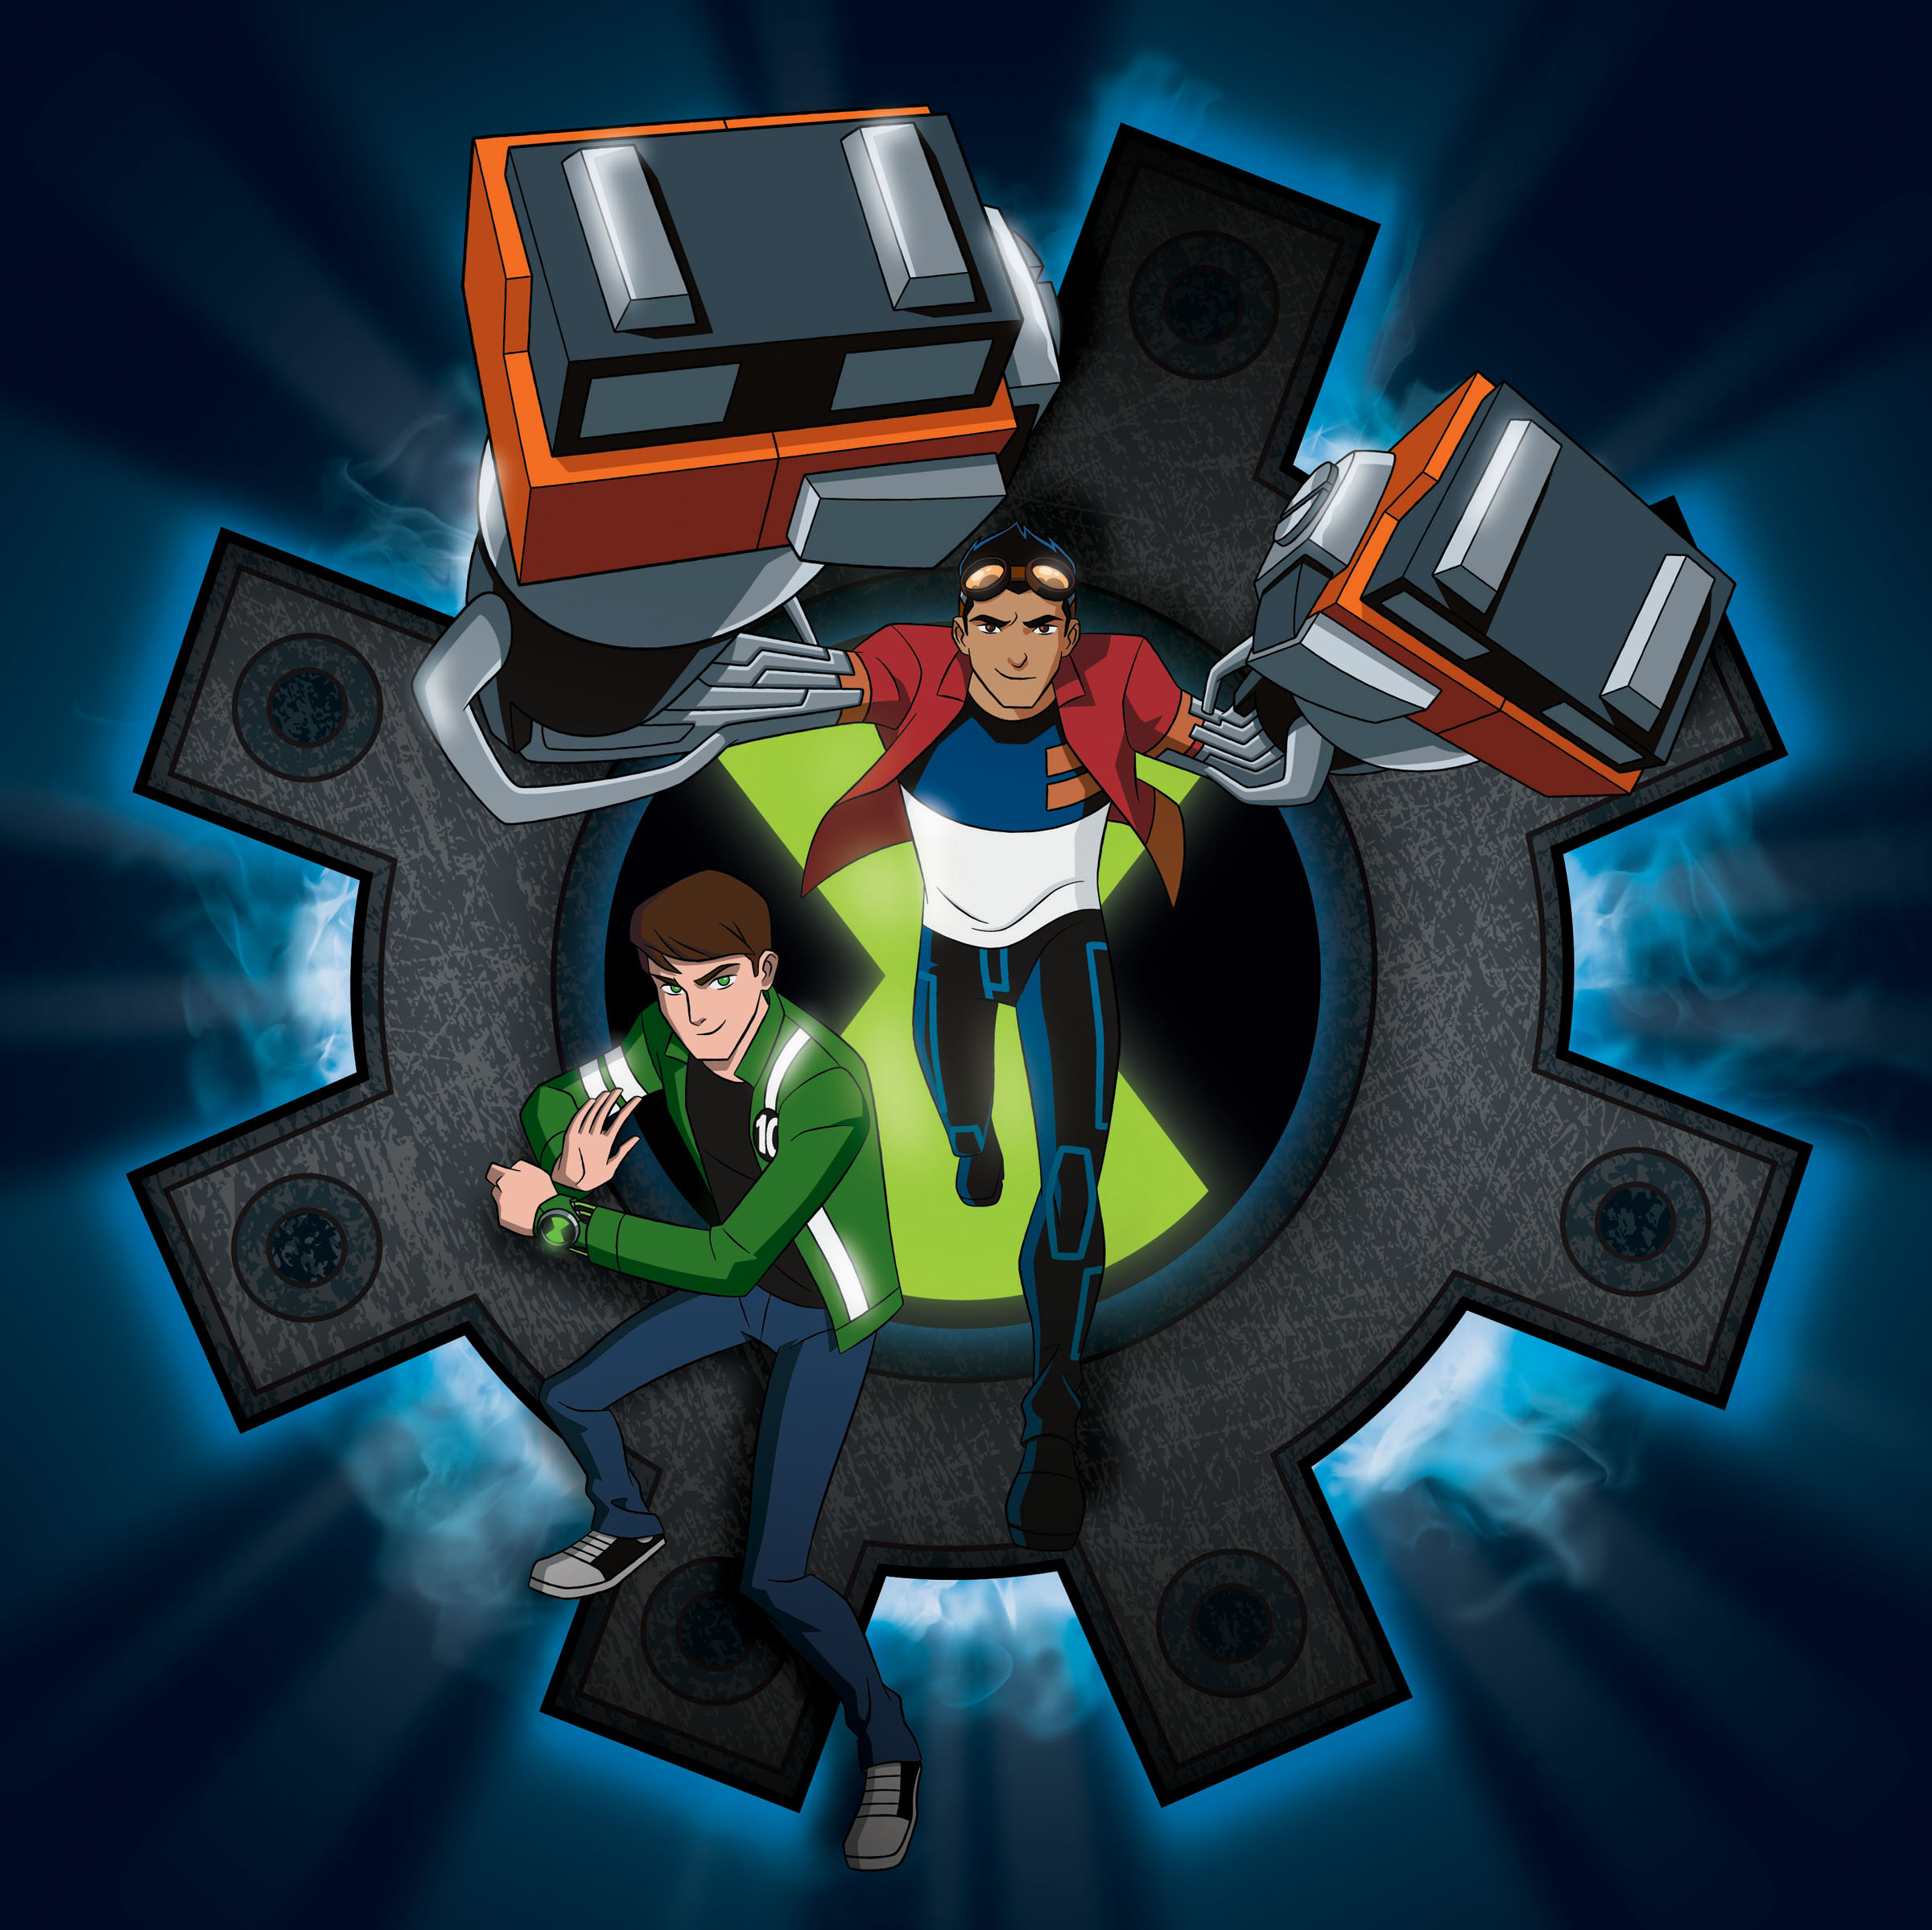 CN to Air Ben 10/Generator Rex Crossover Episode | Animation Magazine